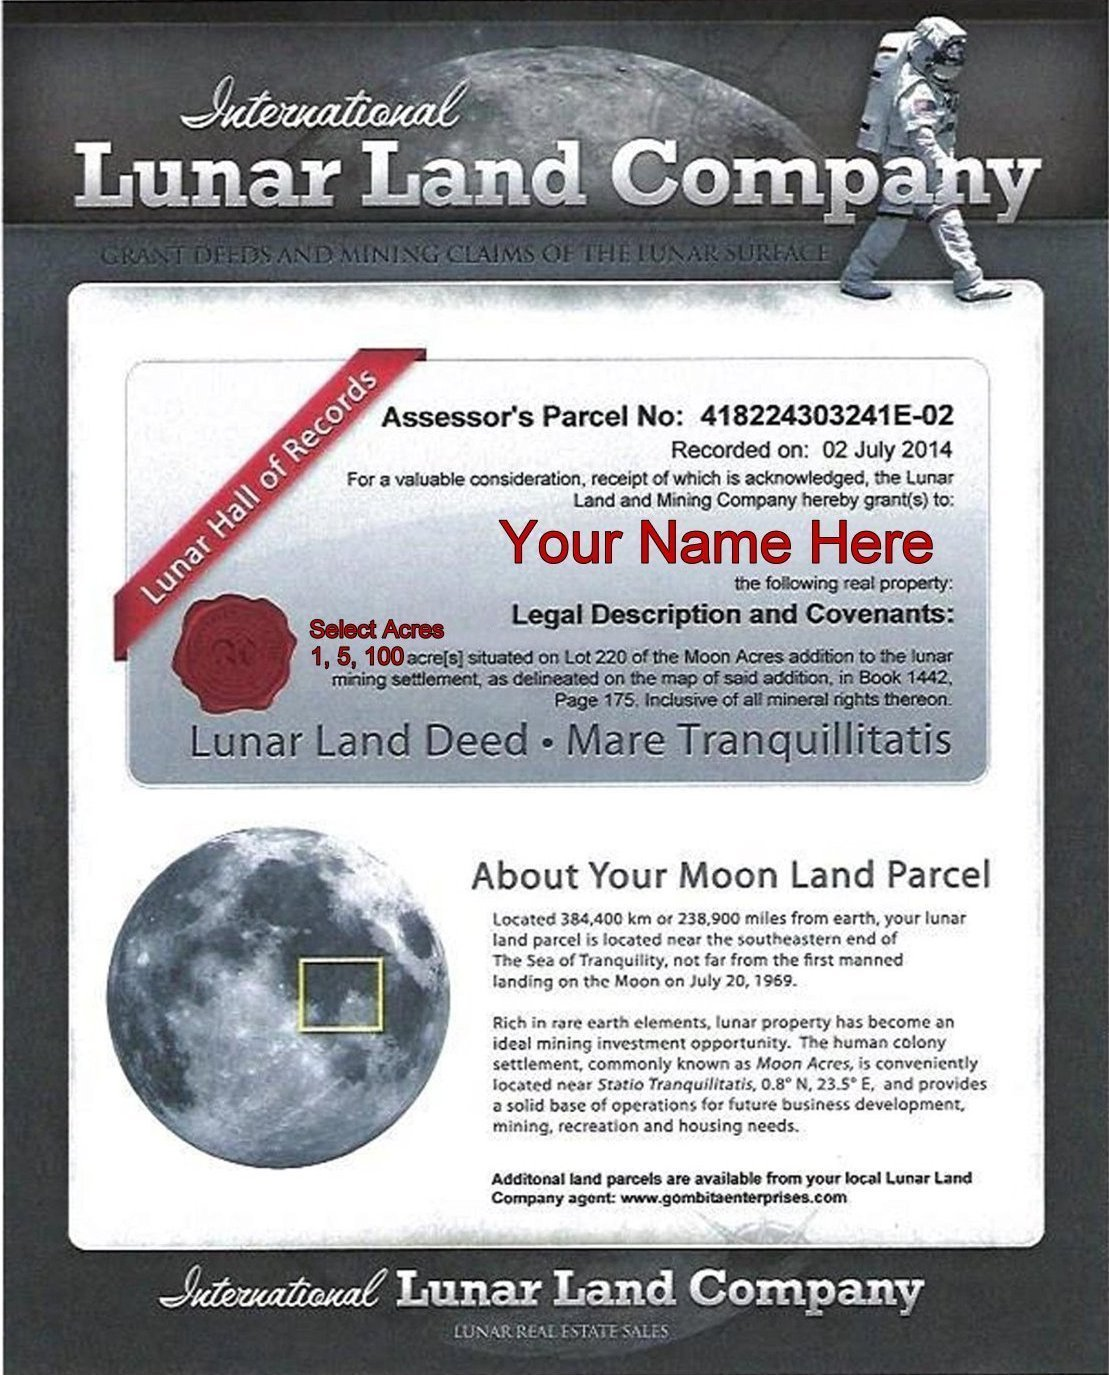 Lunar Land Company - PDF Download To Email